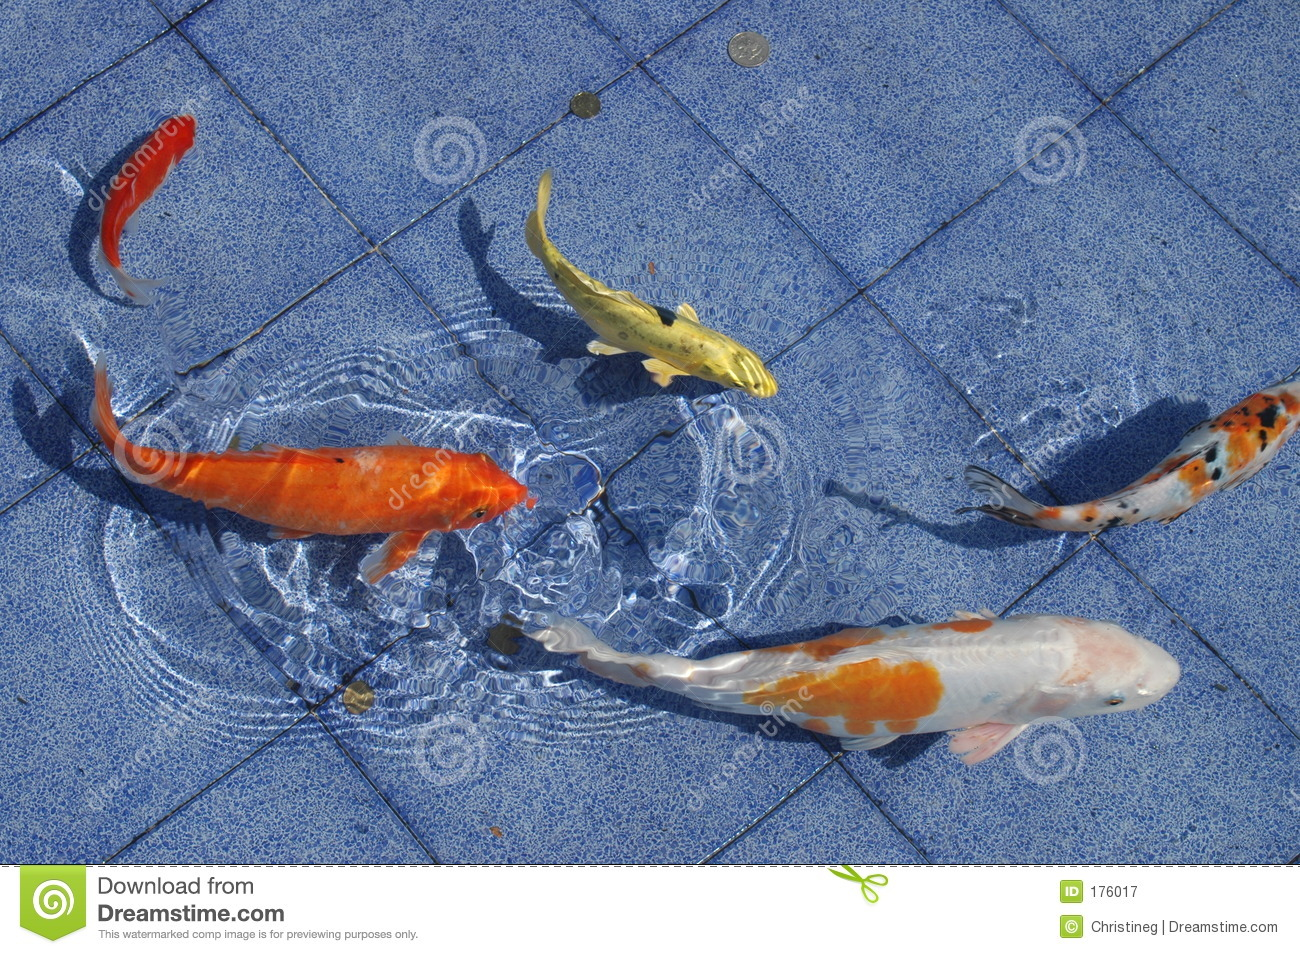 Koi fish in a blue pool stock image image of pets marine for Koi swimming pool